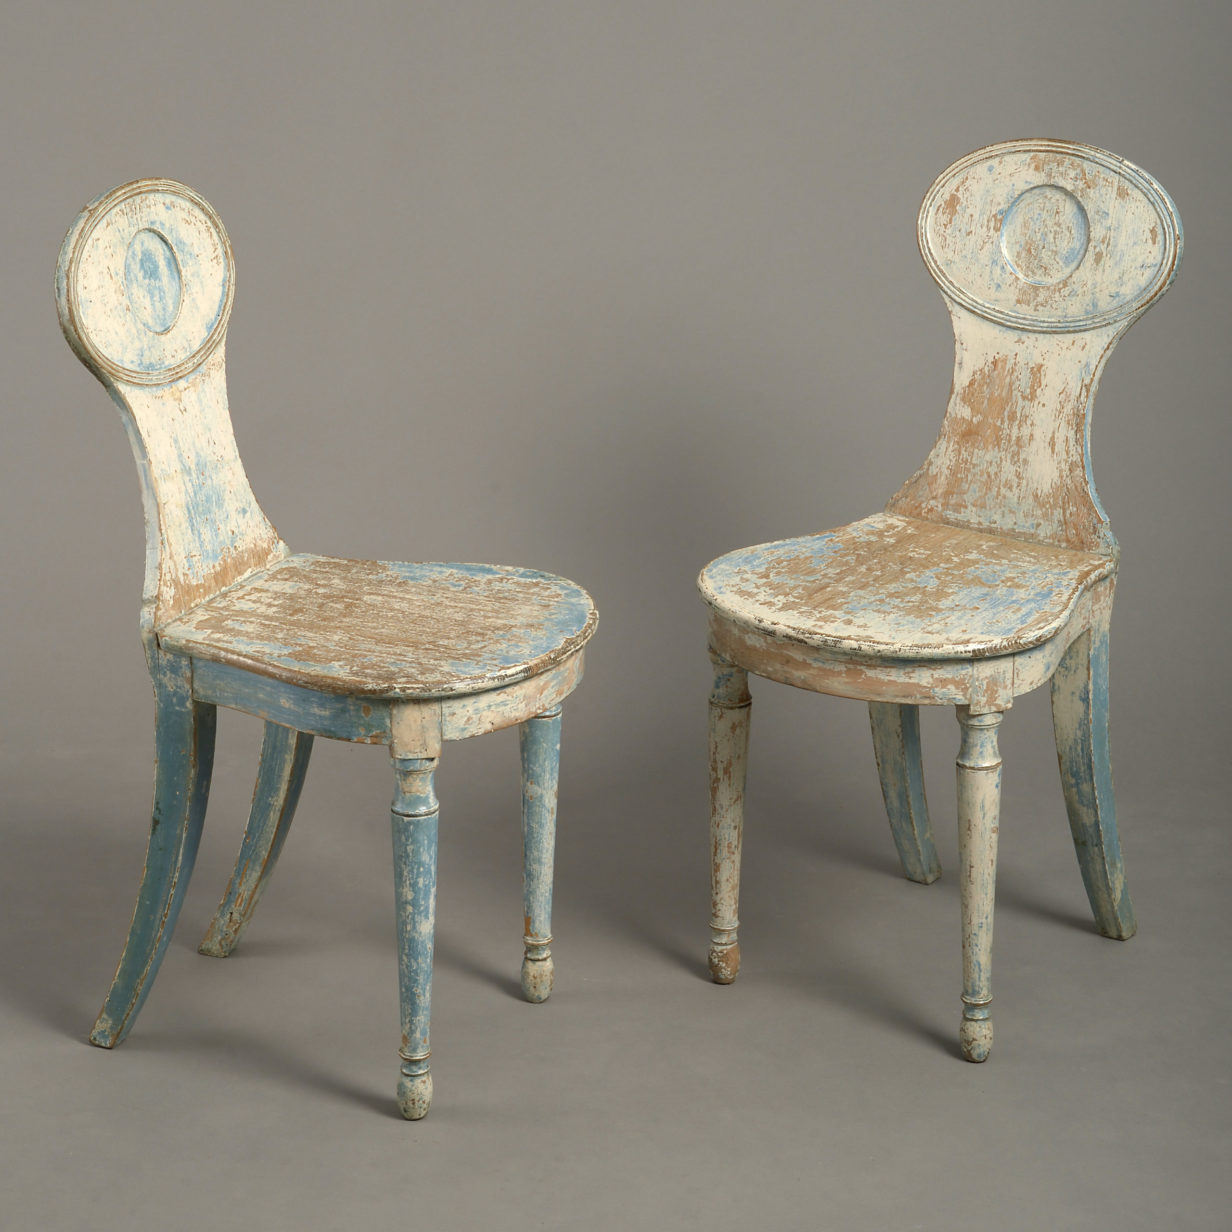 Pair of John Gee Hall Chairs